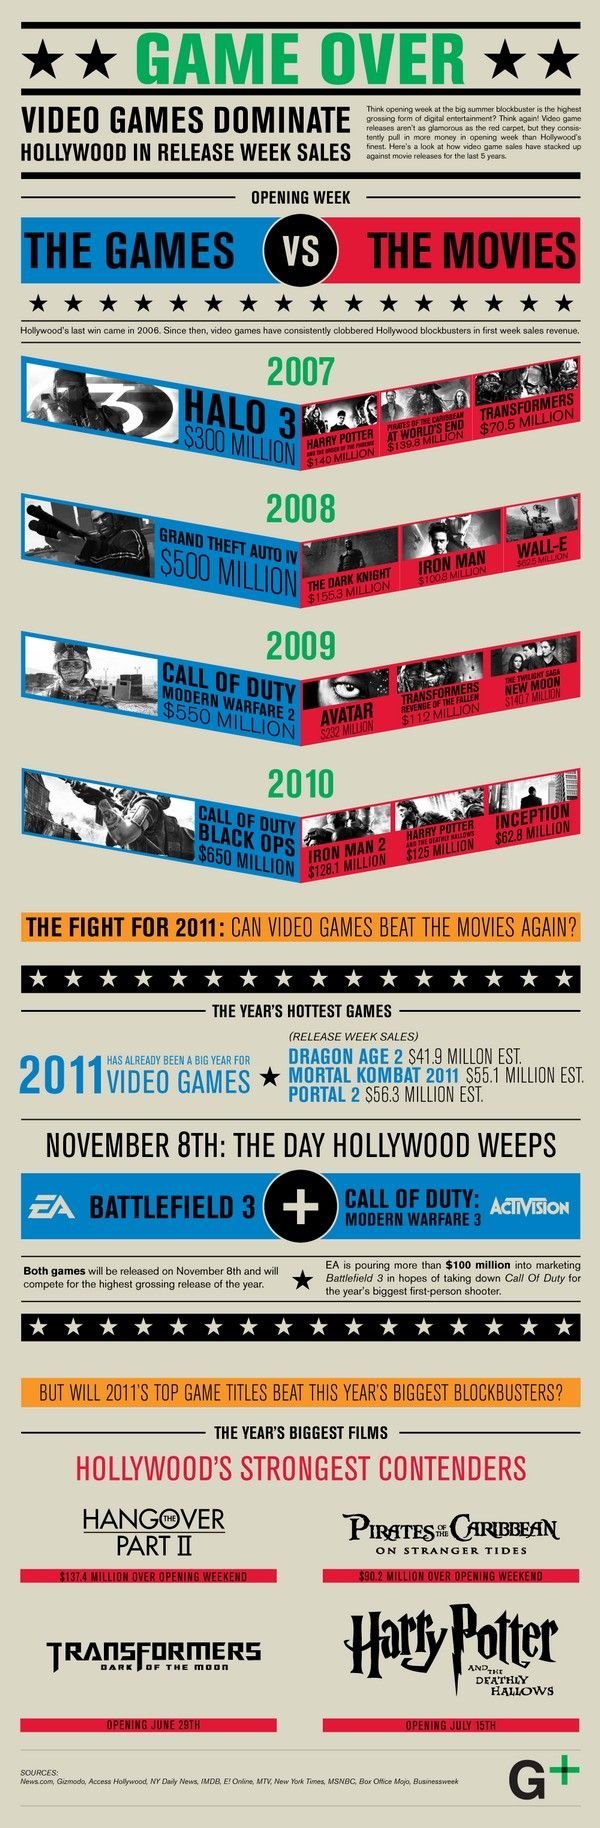 This infographic provides information for a comparison of sales of the opening week of movies versus the opening week of video games. This infographic